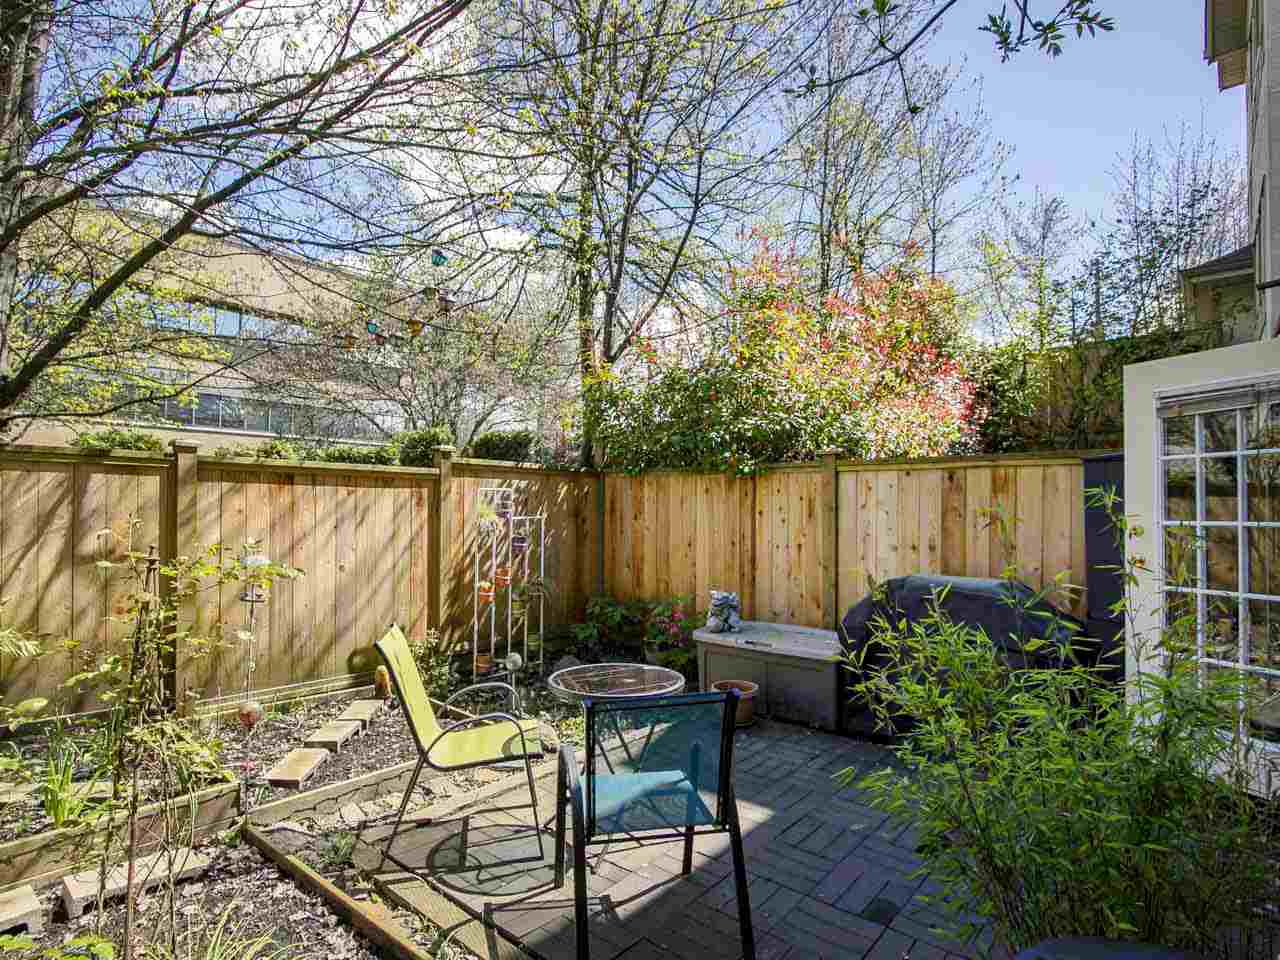 314 SqFt Fenced Yard